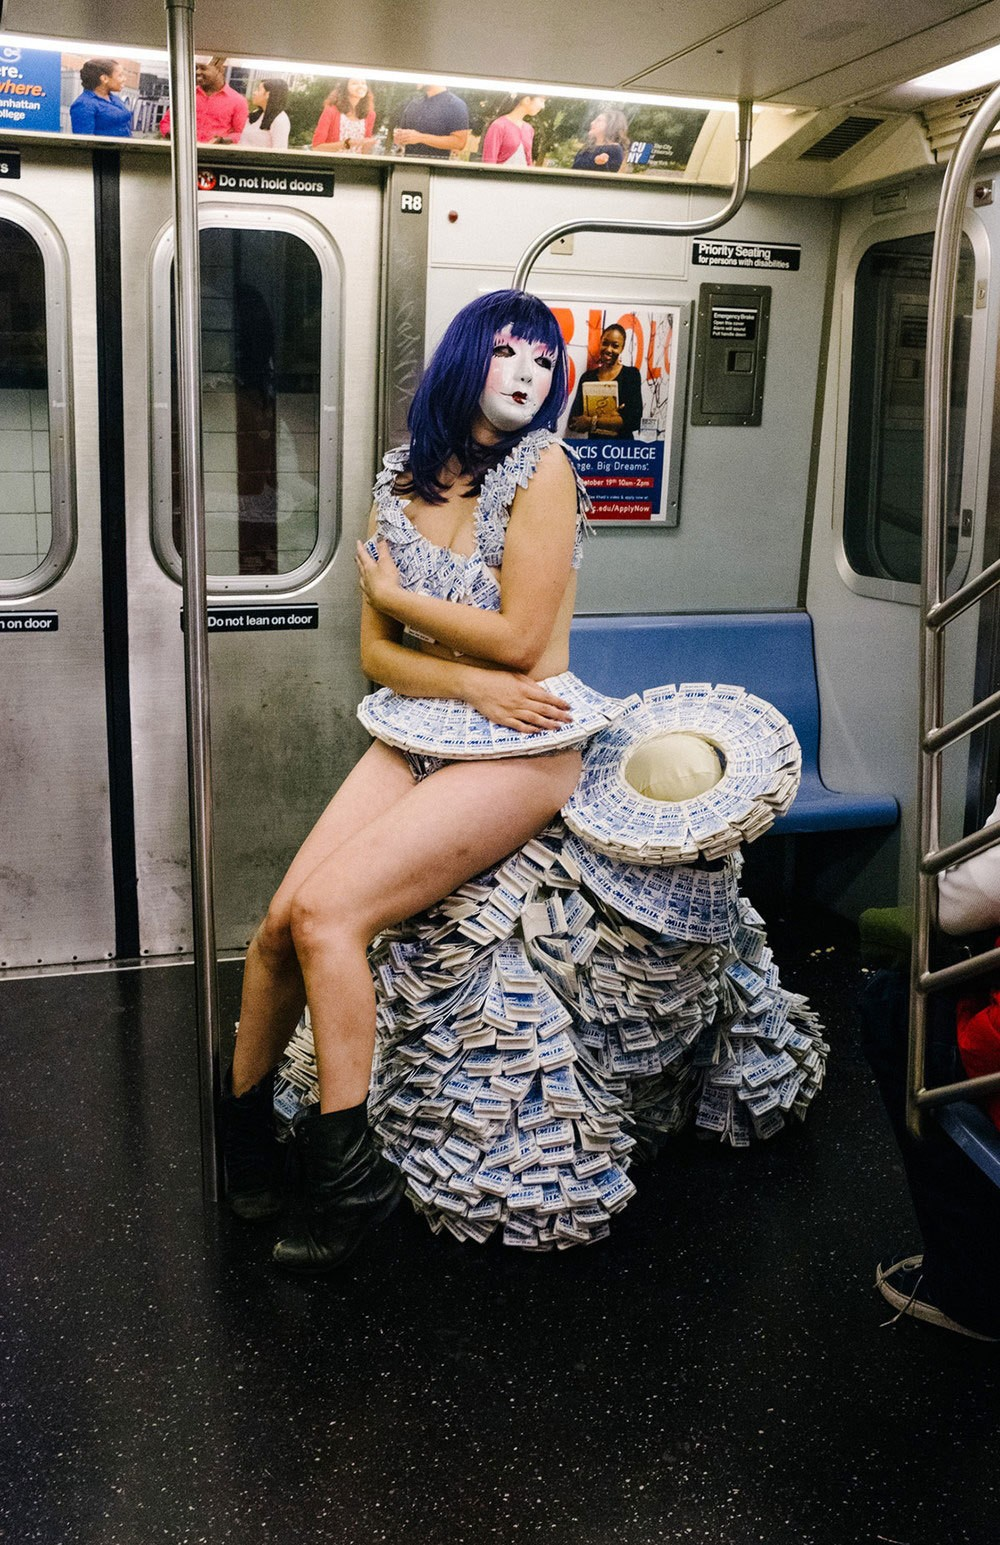 Hundreds strip for transit trips as No Pants Subway Ride